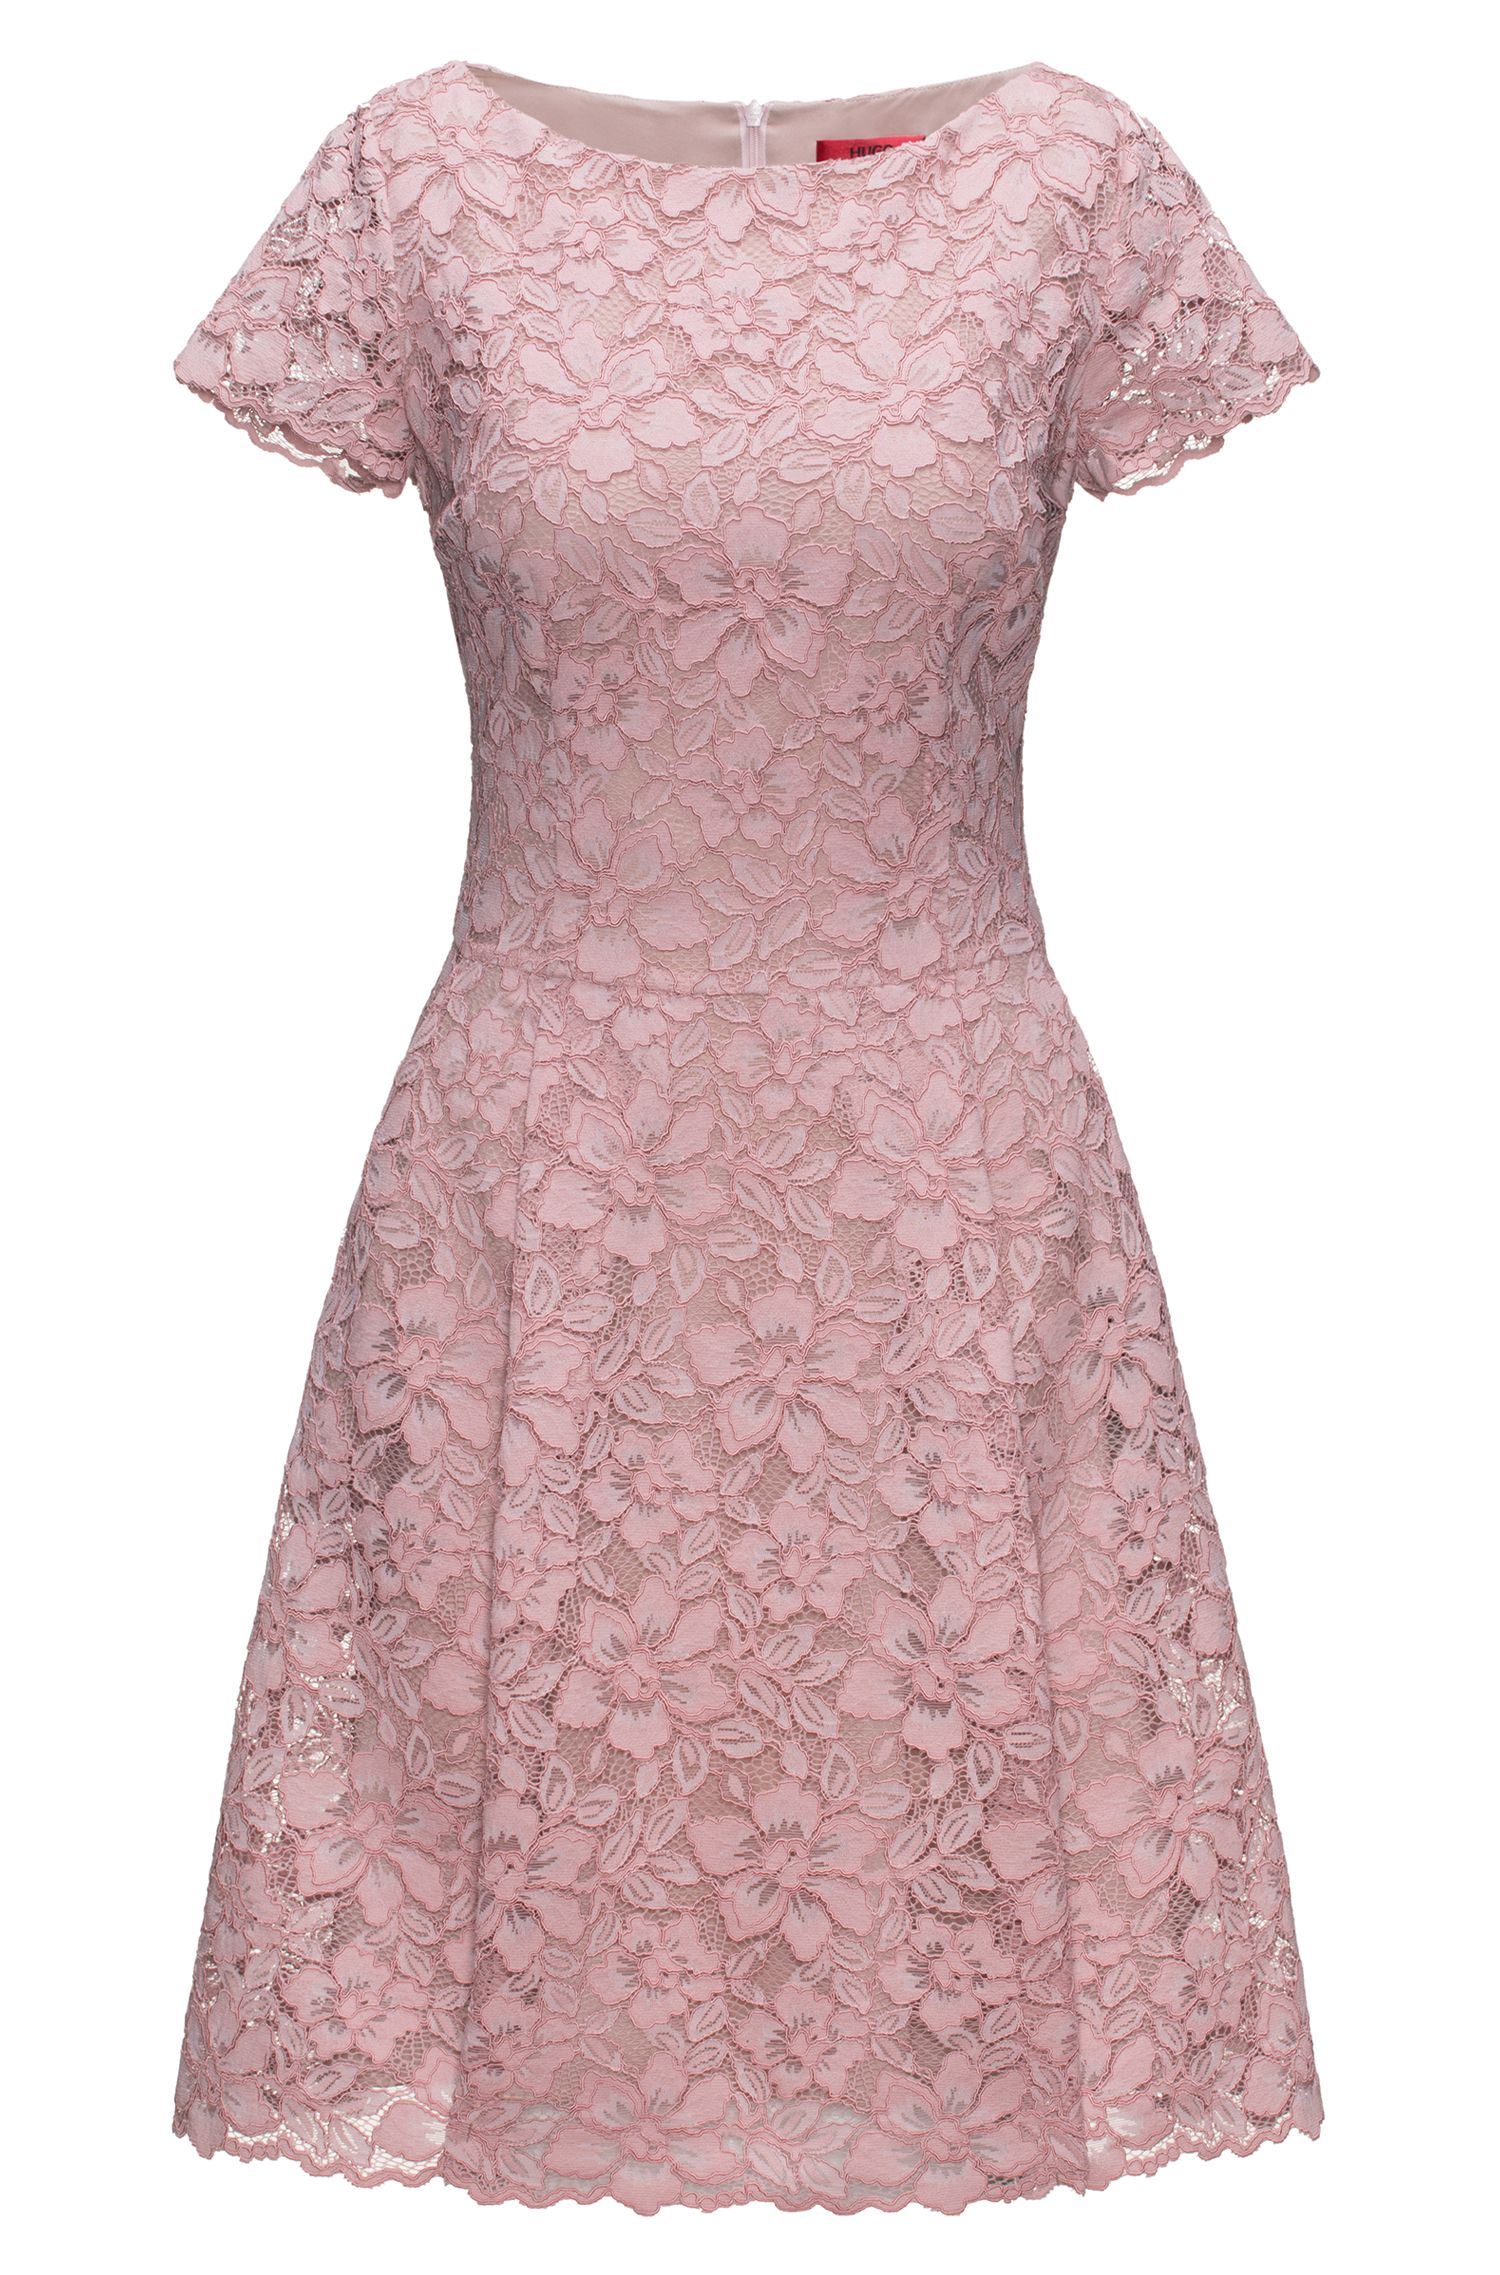 Regular-fit dress in floral lace